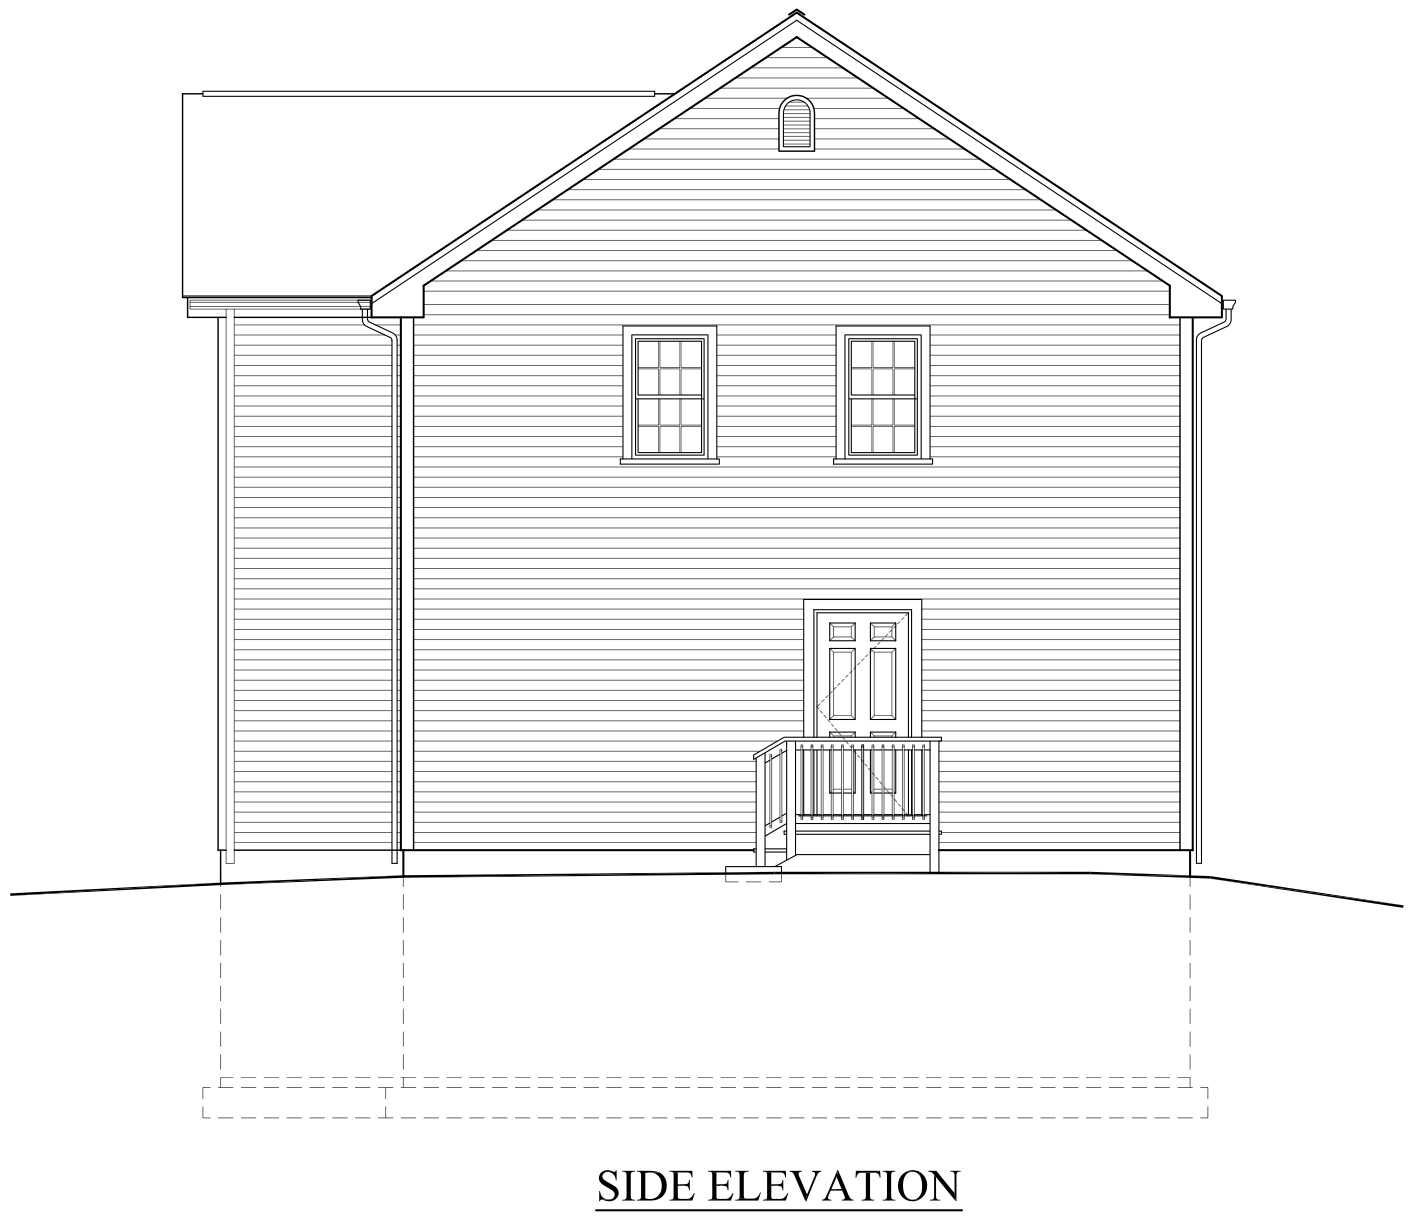 Front Elevation Side Elevation : What is front elevation